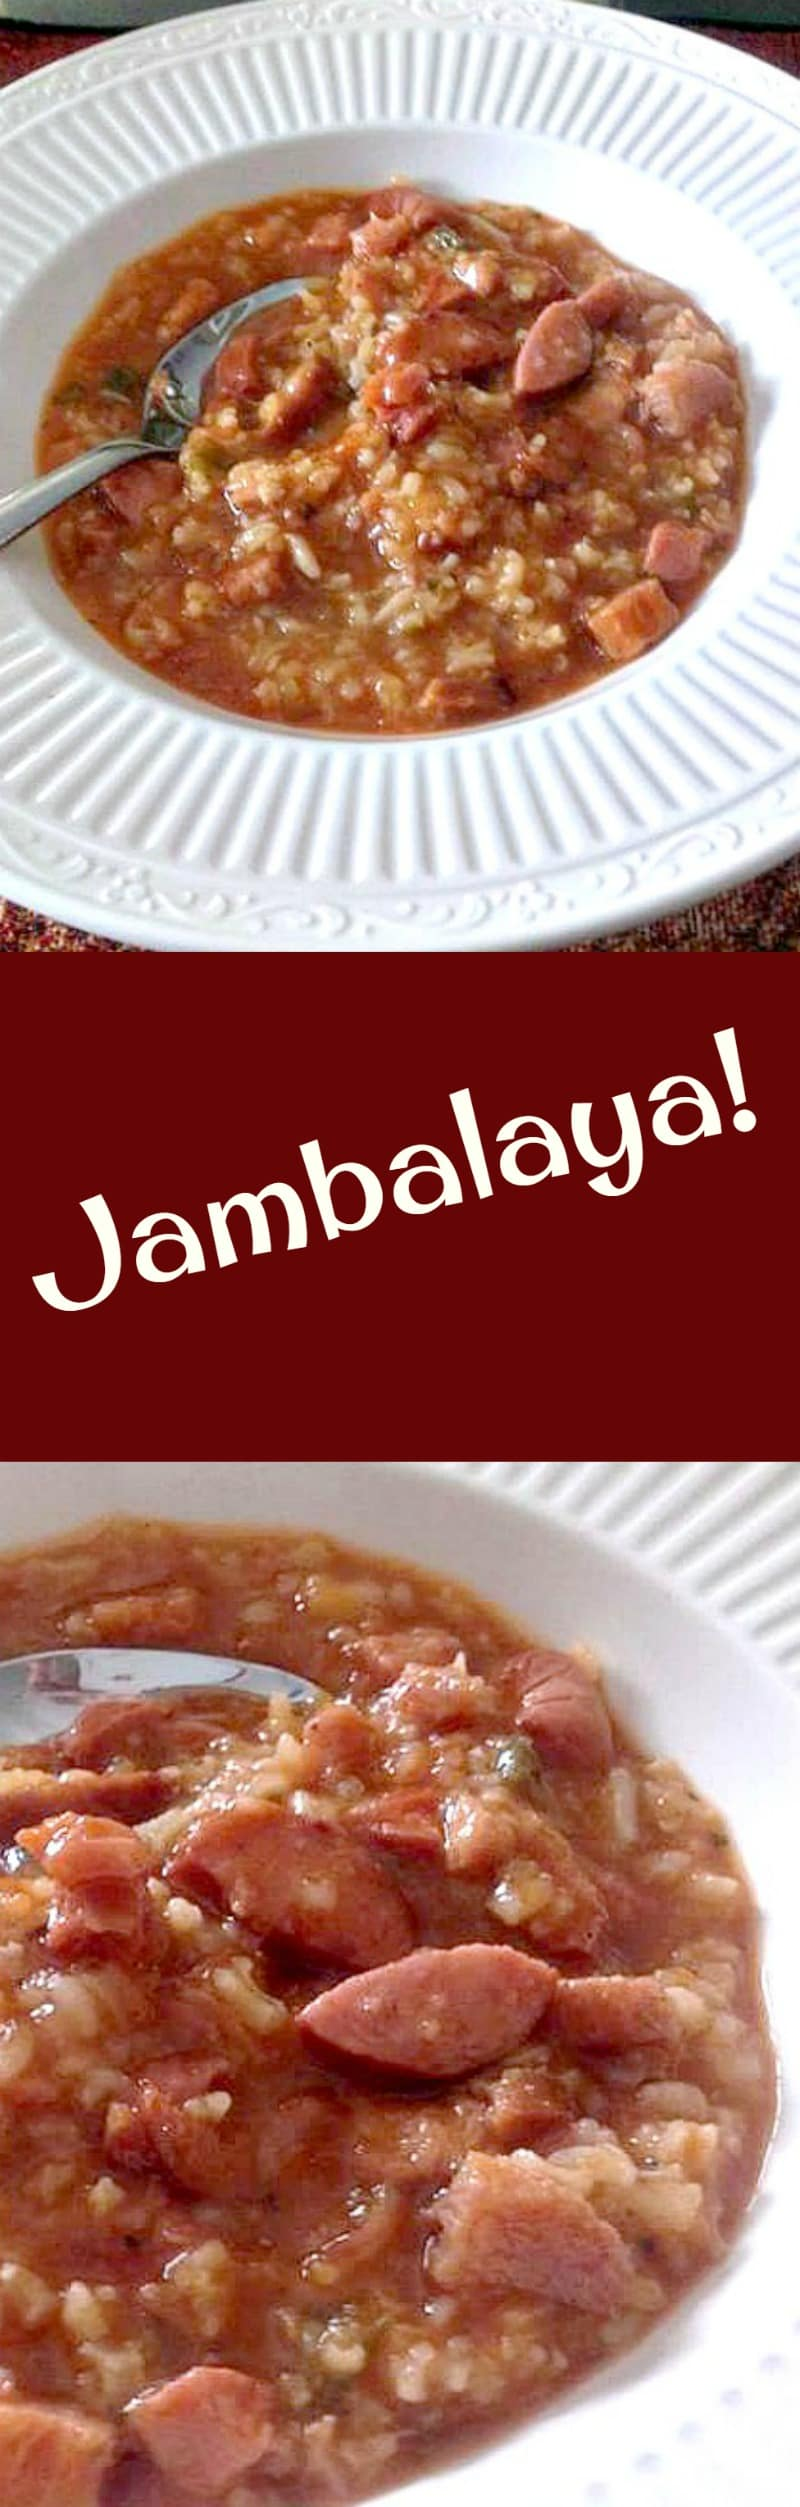 Jambalaya. This is a great family recipe, made from scratch with regular ingredients. Really fantastic flavor and always a hit. Serve as a dinner or pot lucks, parties etc. | Lovefoodies.com